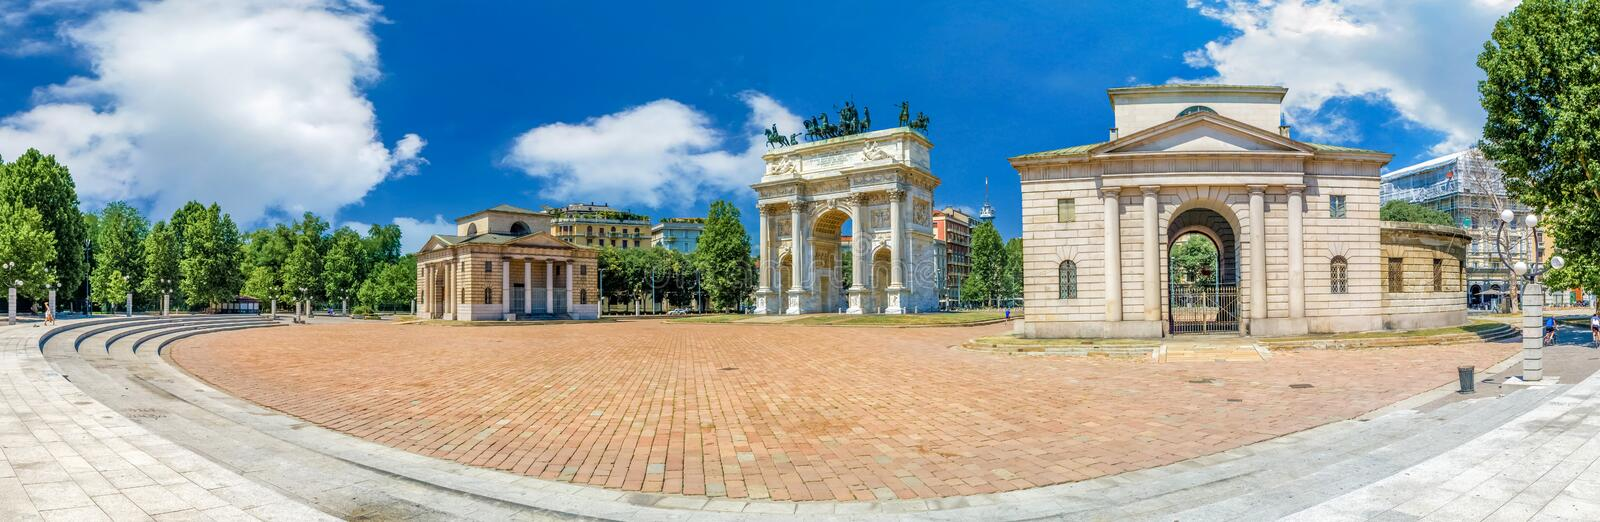 Huge wide panorama view of Arco della Pace, Porta Sempione, colorful sunny day in Milan Italy Summer Blue Sky Outdoors royalty free stock photo